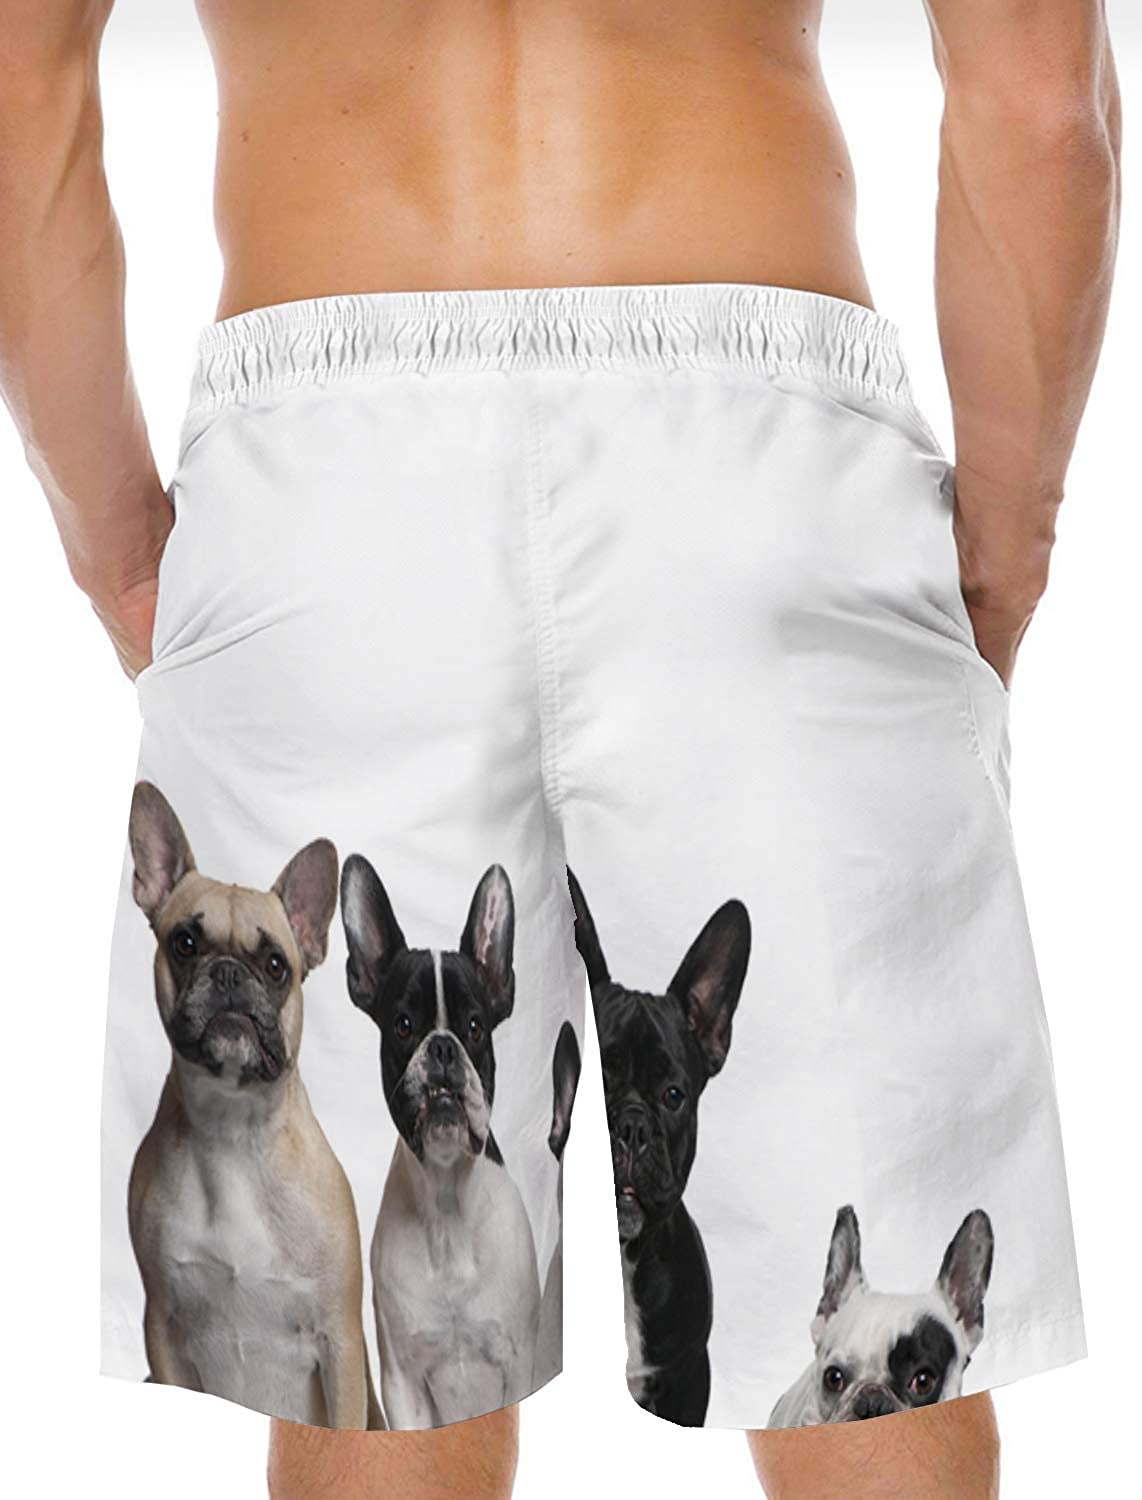 Mens Beach Shorts Chinese Ink Painting Summer Casual Quick Dry Short Pants Stretch Swimming Trunks with Pocket